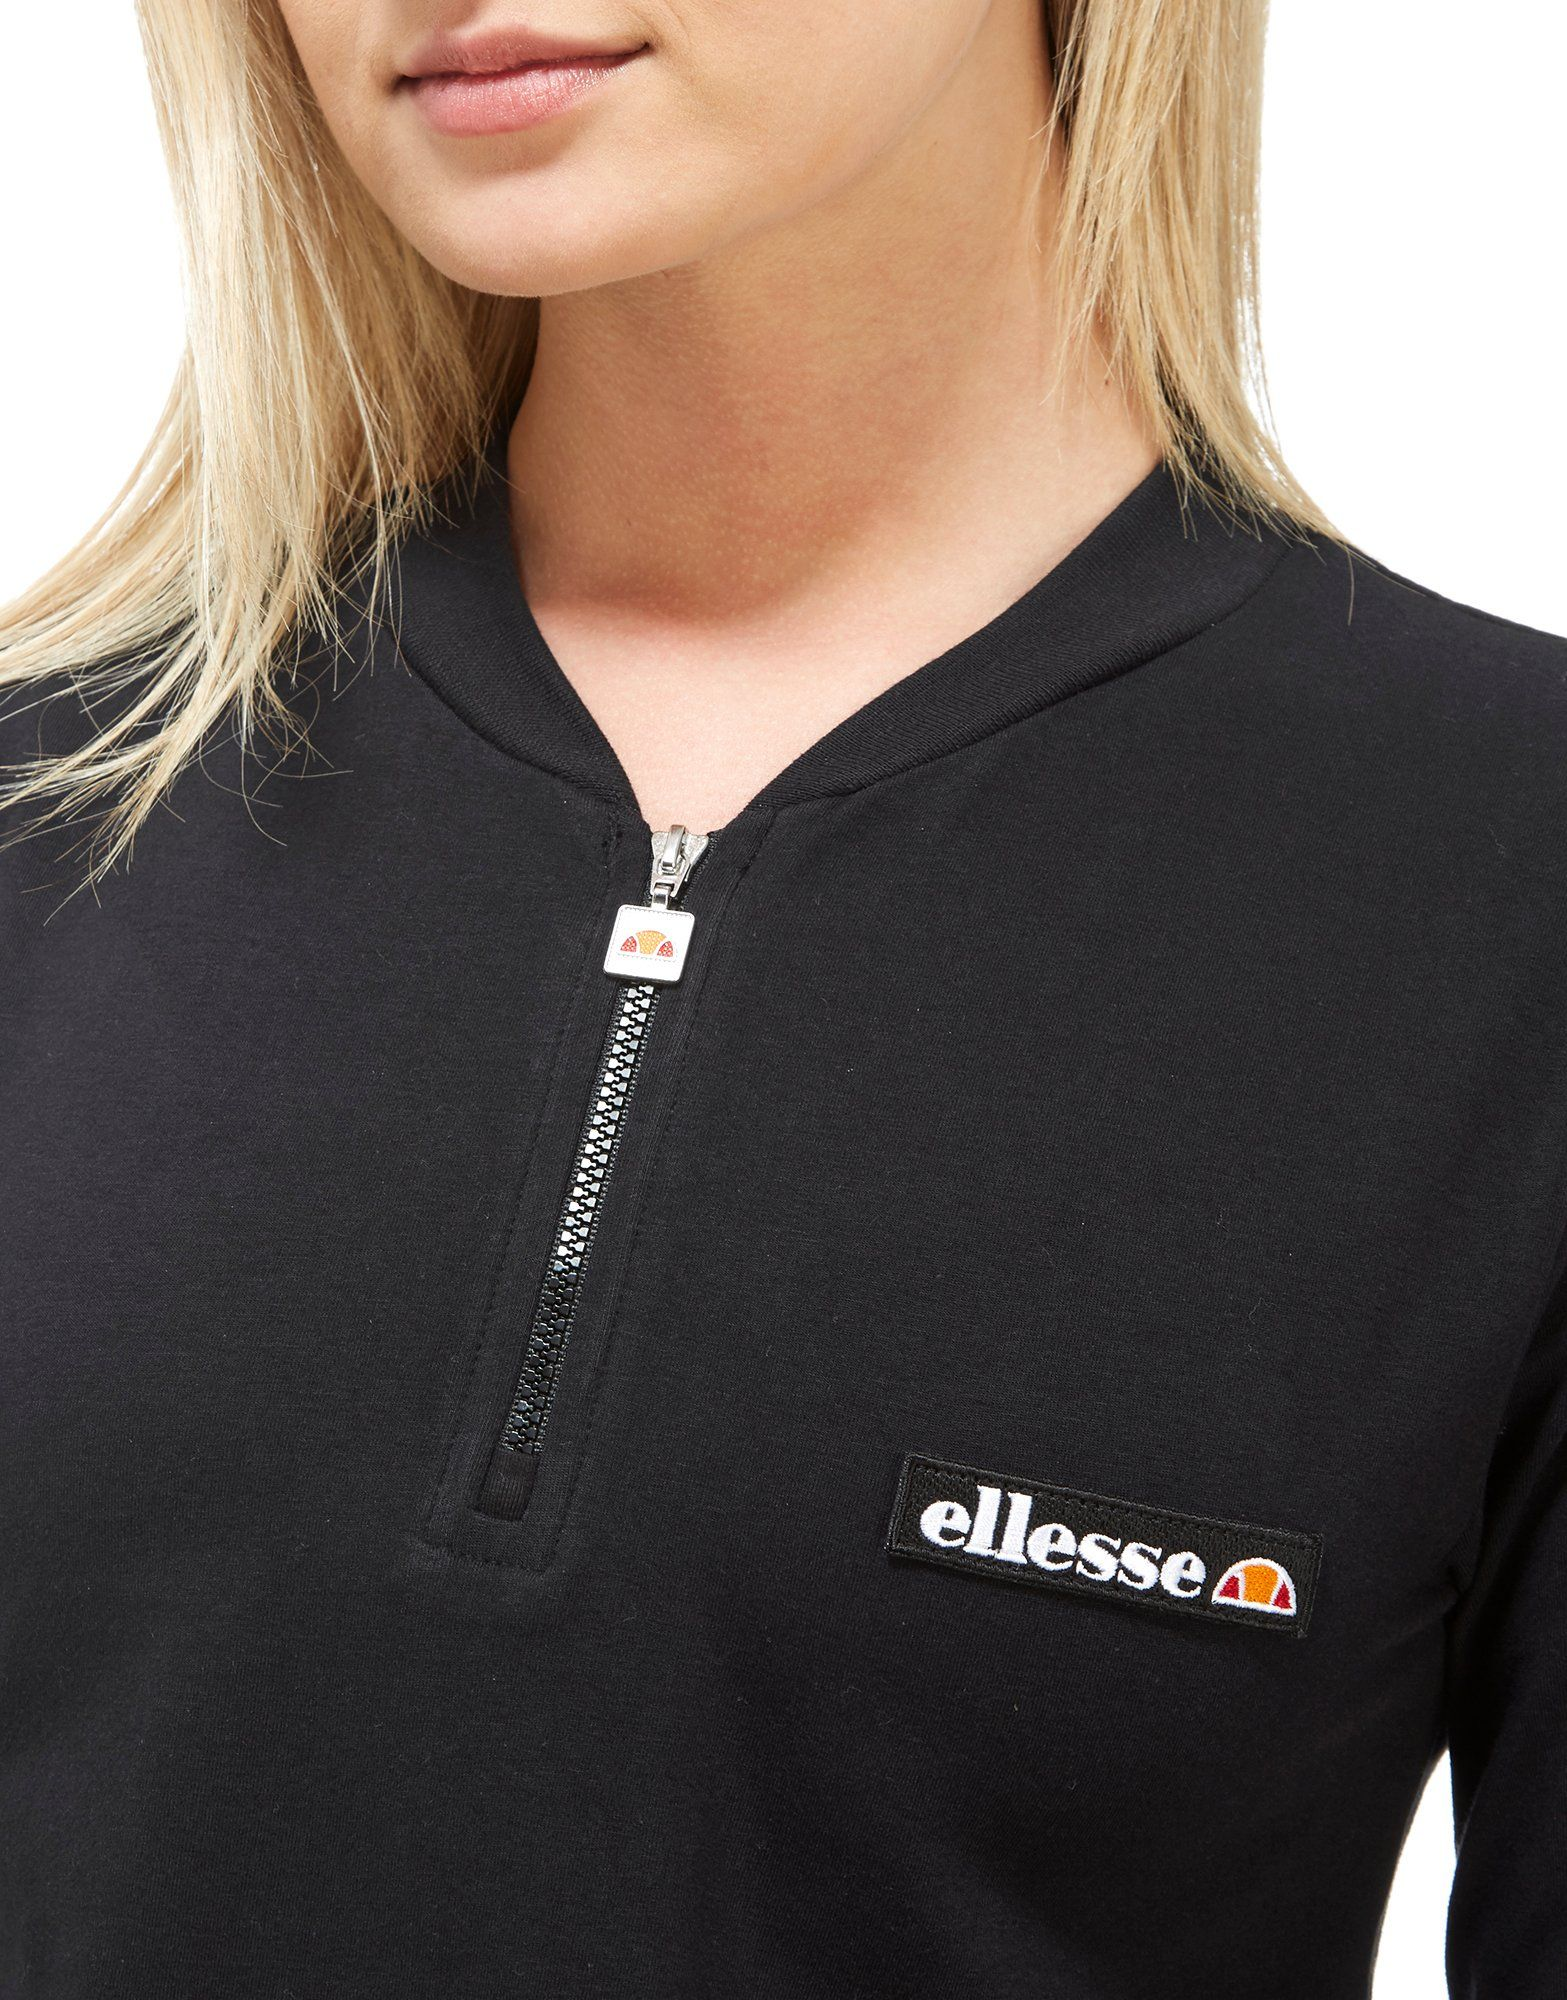 Ellesse Baseball Crop T-Shirt